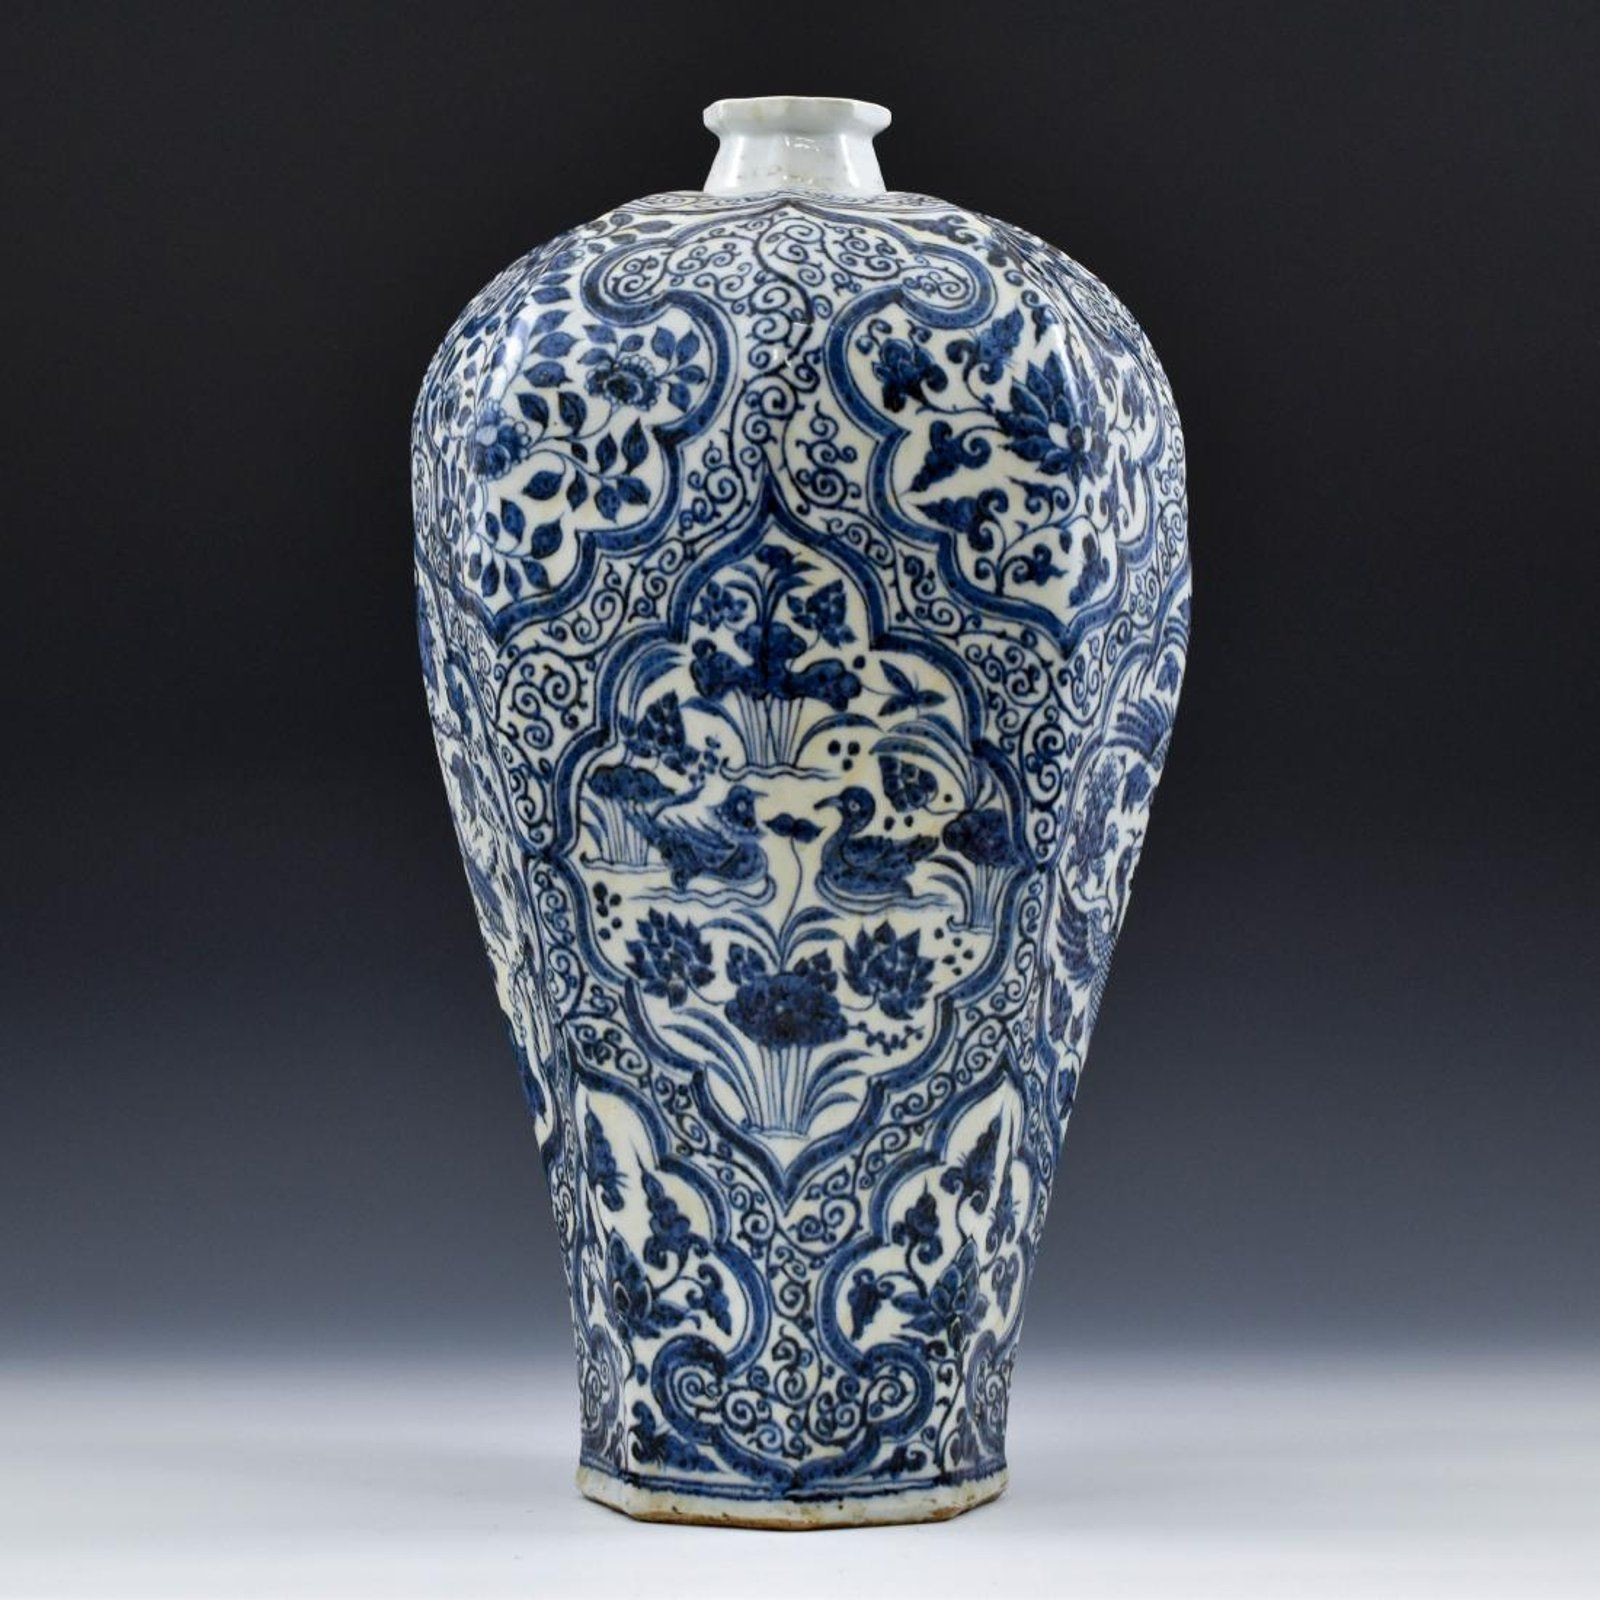 chinese meiping vase of ming dynasty blue and white octagonal meiping vase on chinese with ming dynasty blue and white octagonal meiping vase